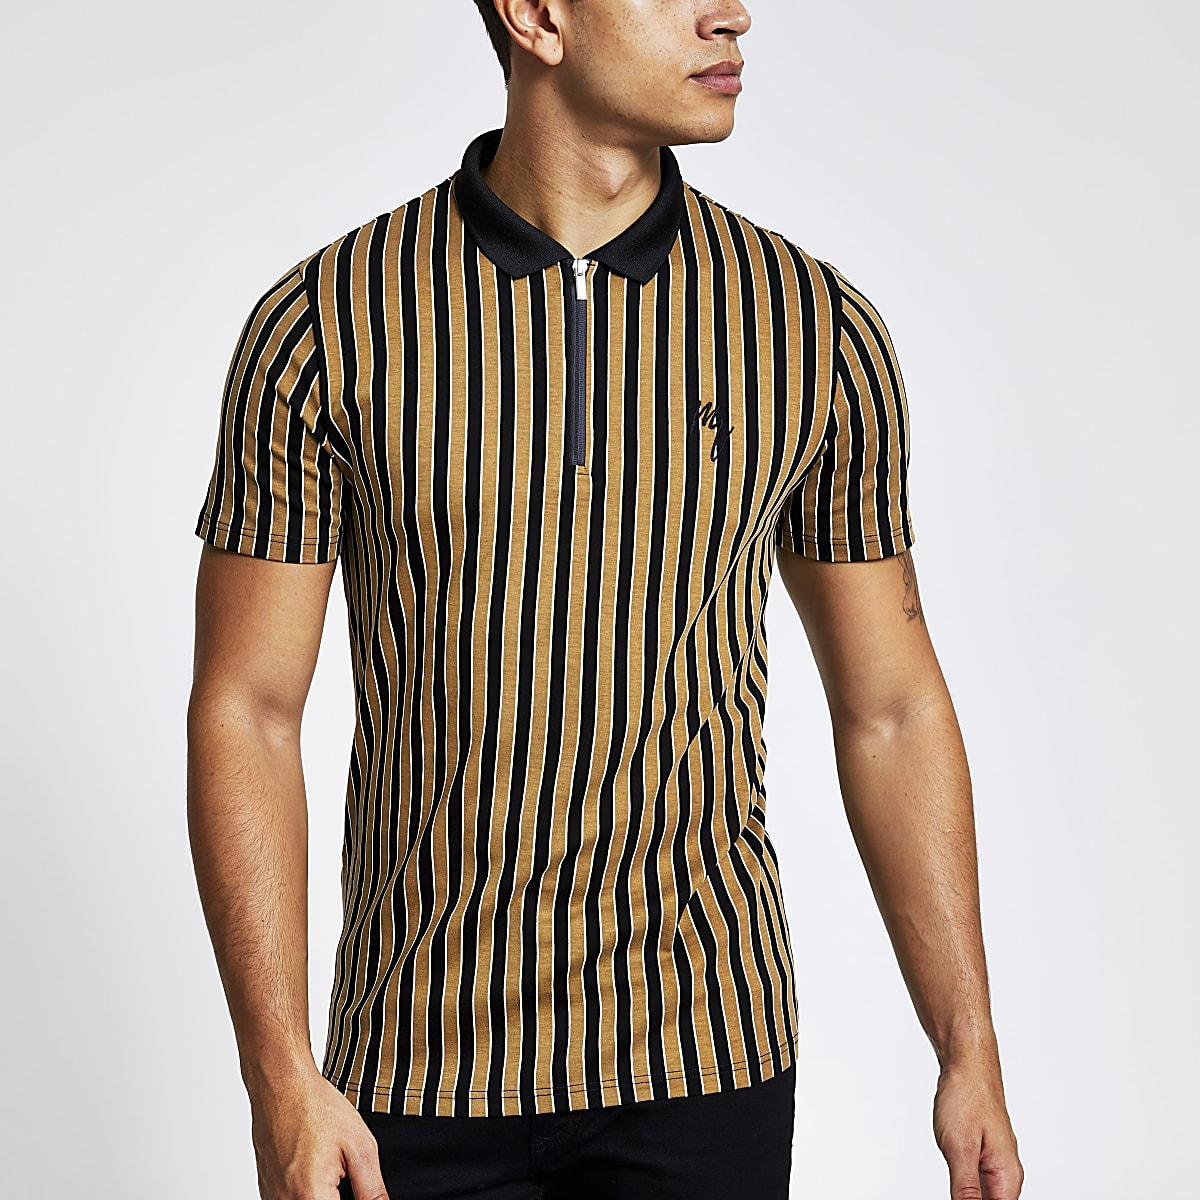 Maison Riviera brown slim fit zip polo shirt